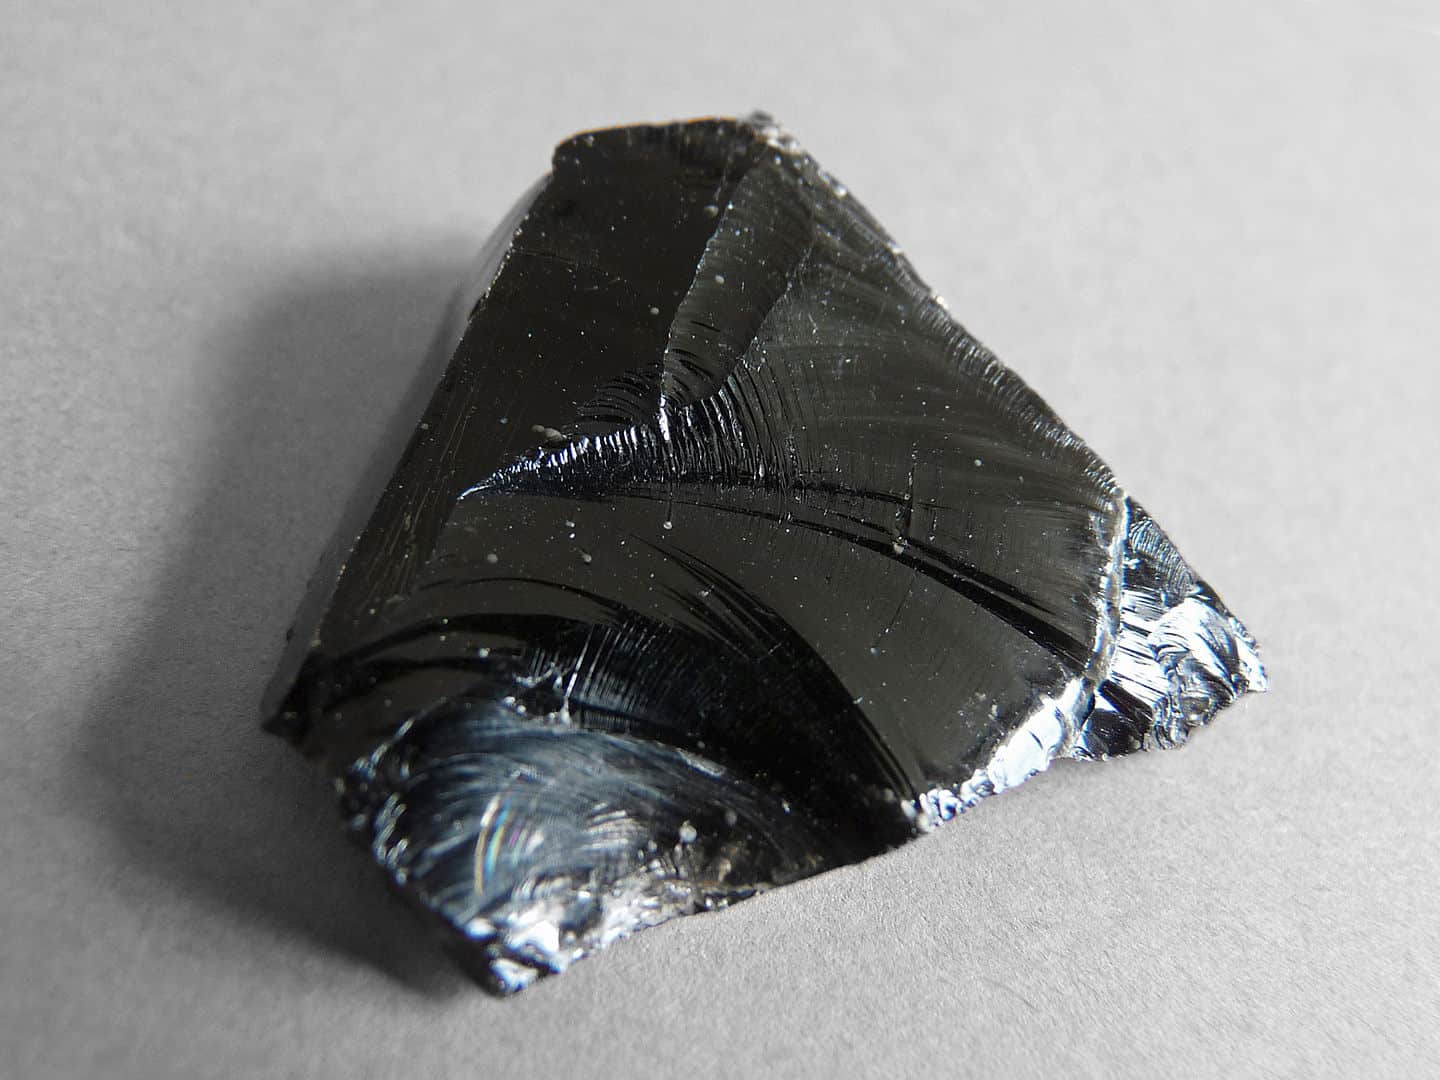 An unworked piece of obsidian.